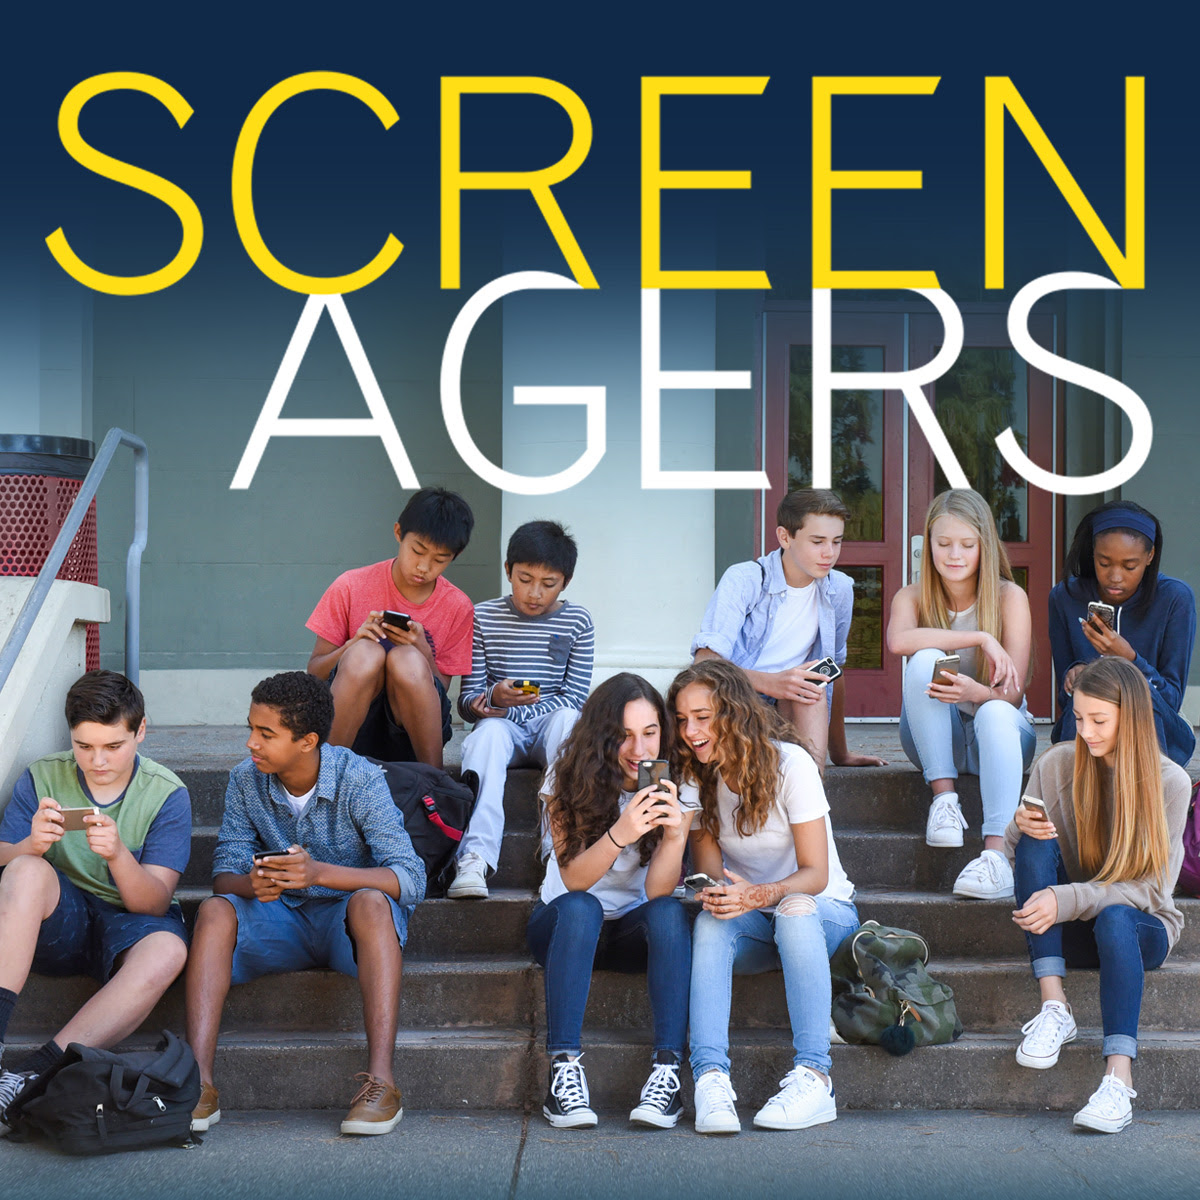 Screenagers Film Presented By St. Eugene Catholic Church